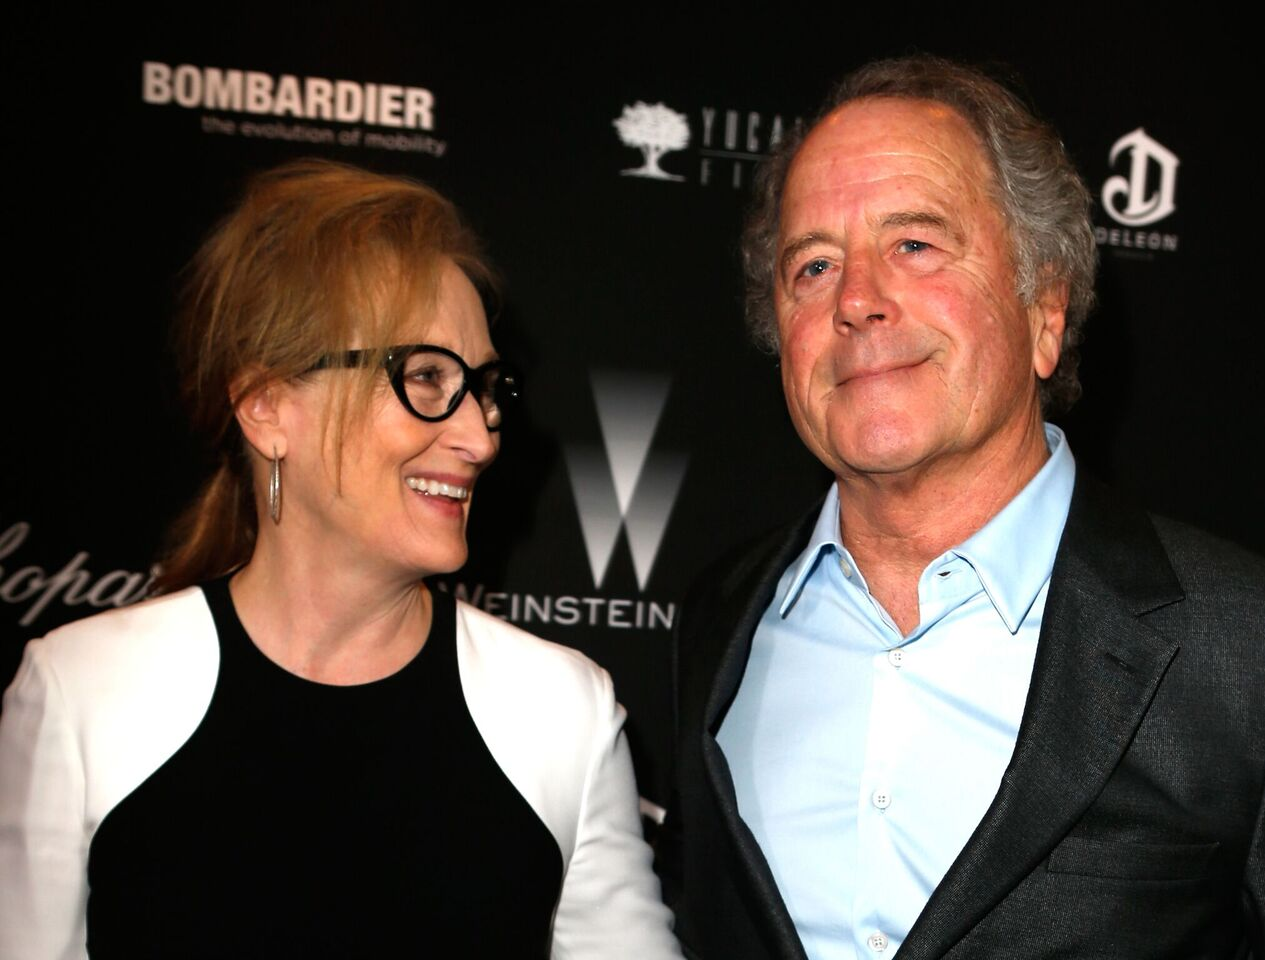 Meryl Streep and Don Gummer attend The Weinstein Company's Academy Award. | Source: Getty Images